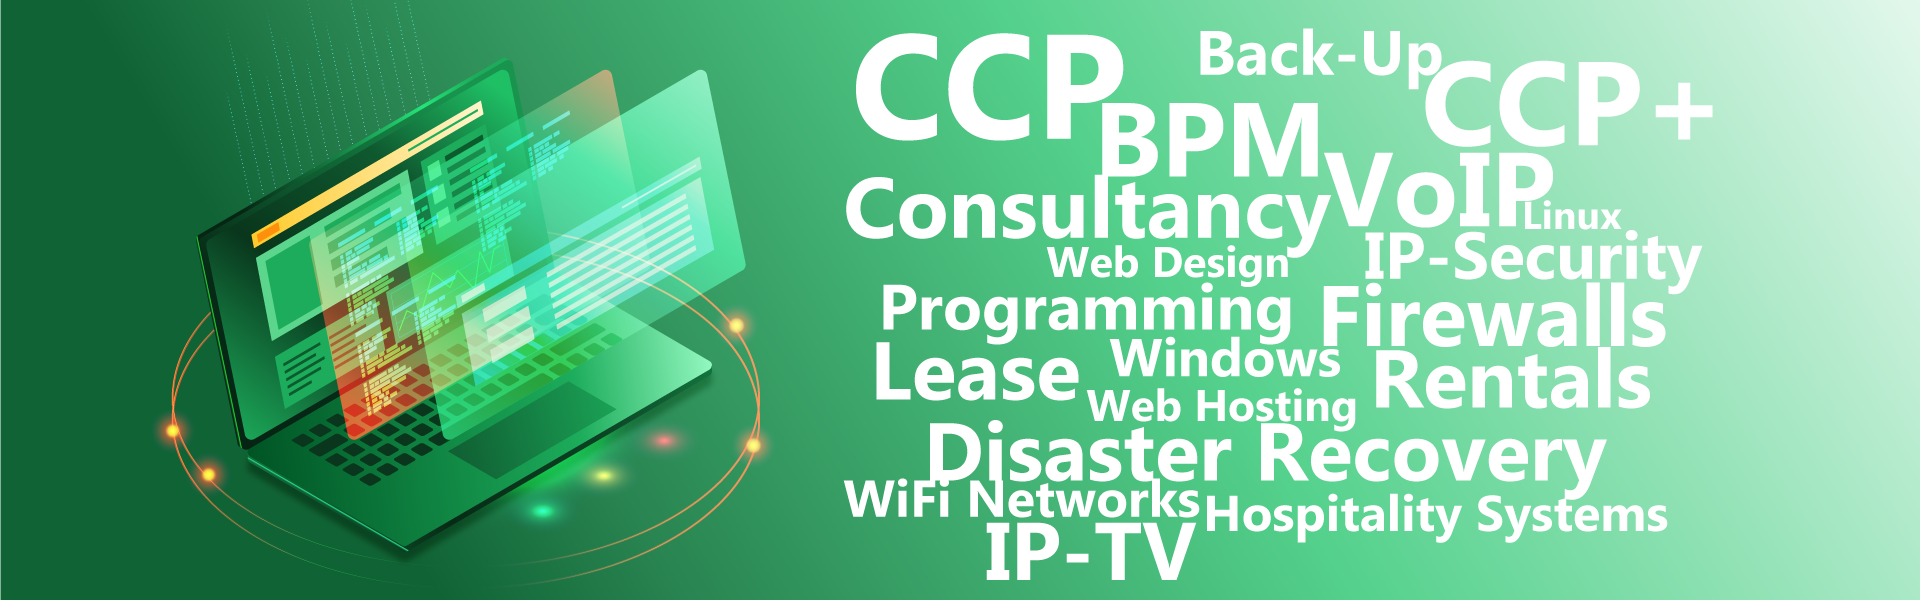 Services by novoteqnica - cpp, backup, lease, iptv, voip, programming